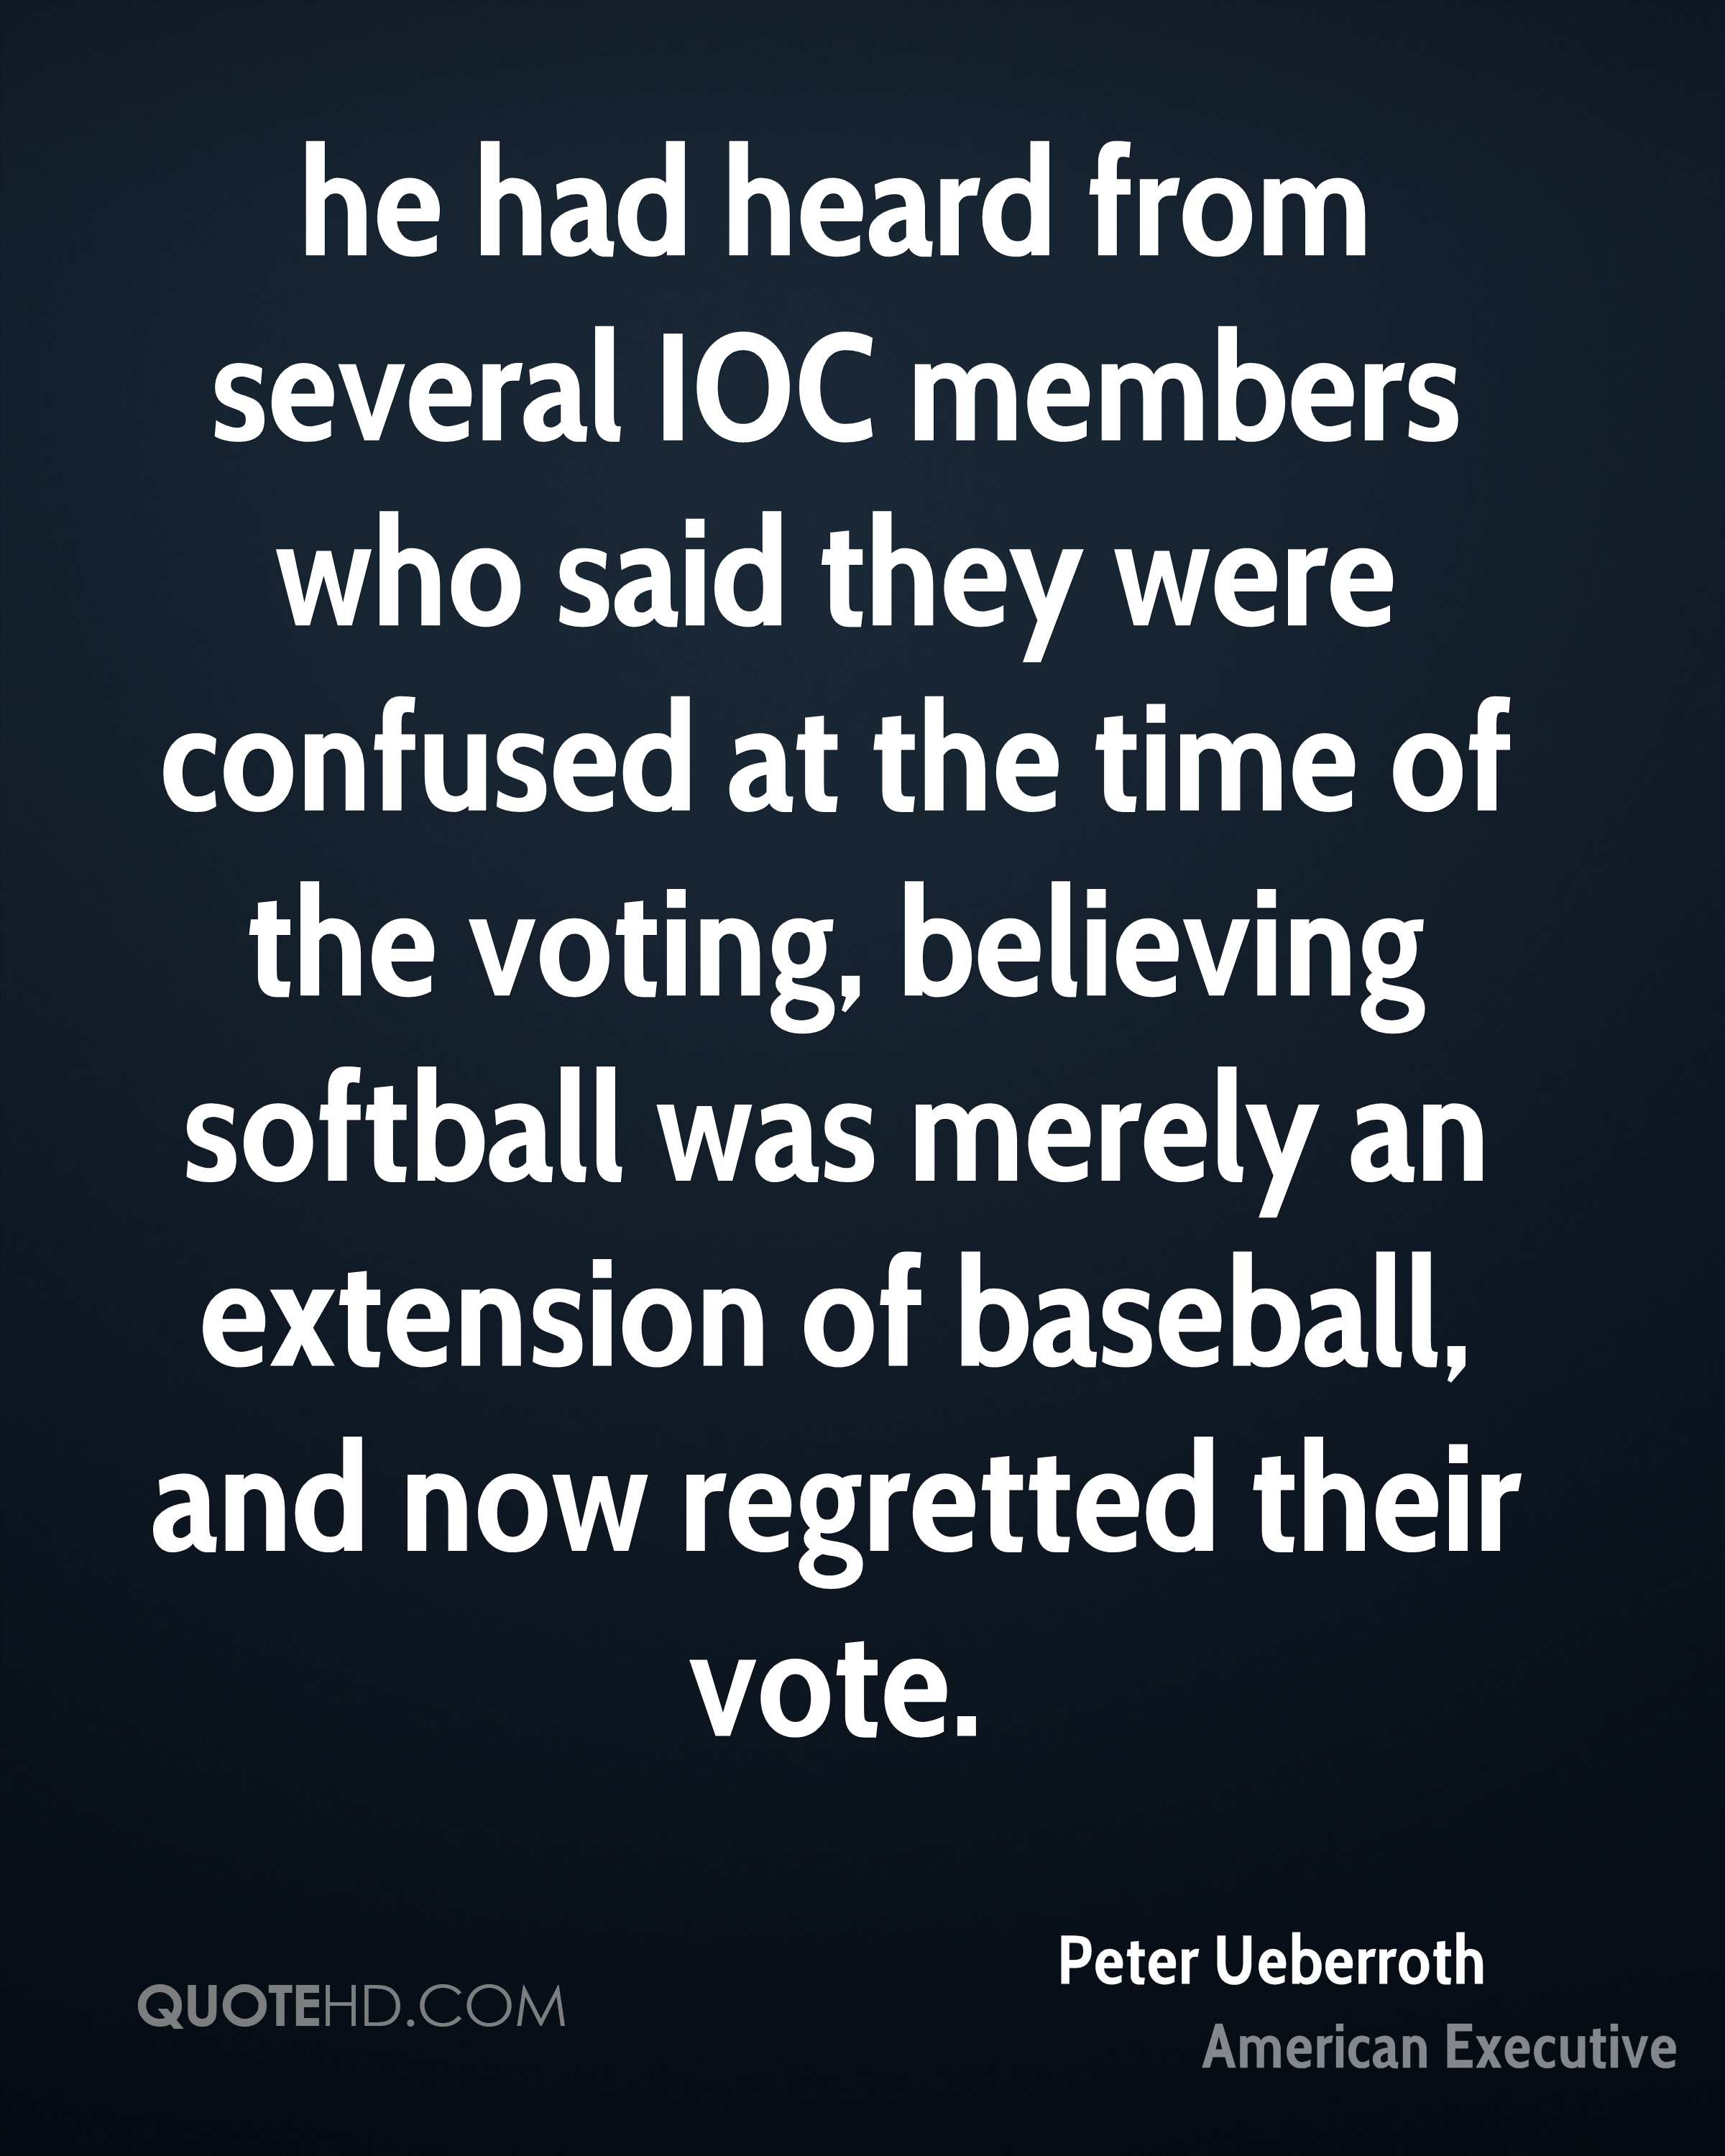 he had heard from several IOC members who said they were confused at the time of the voting, believing softball was merely an extension of baseball, and now regretted their vote.